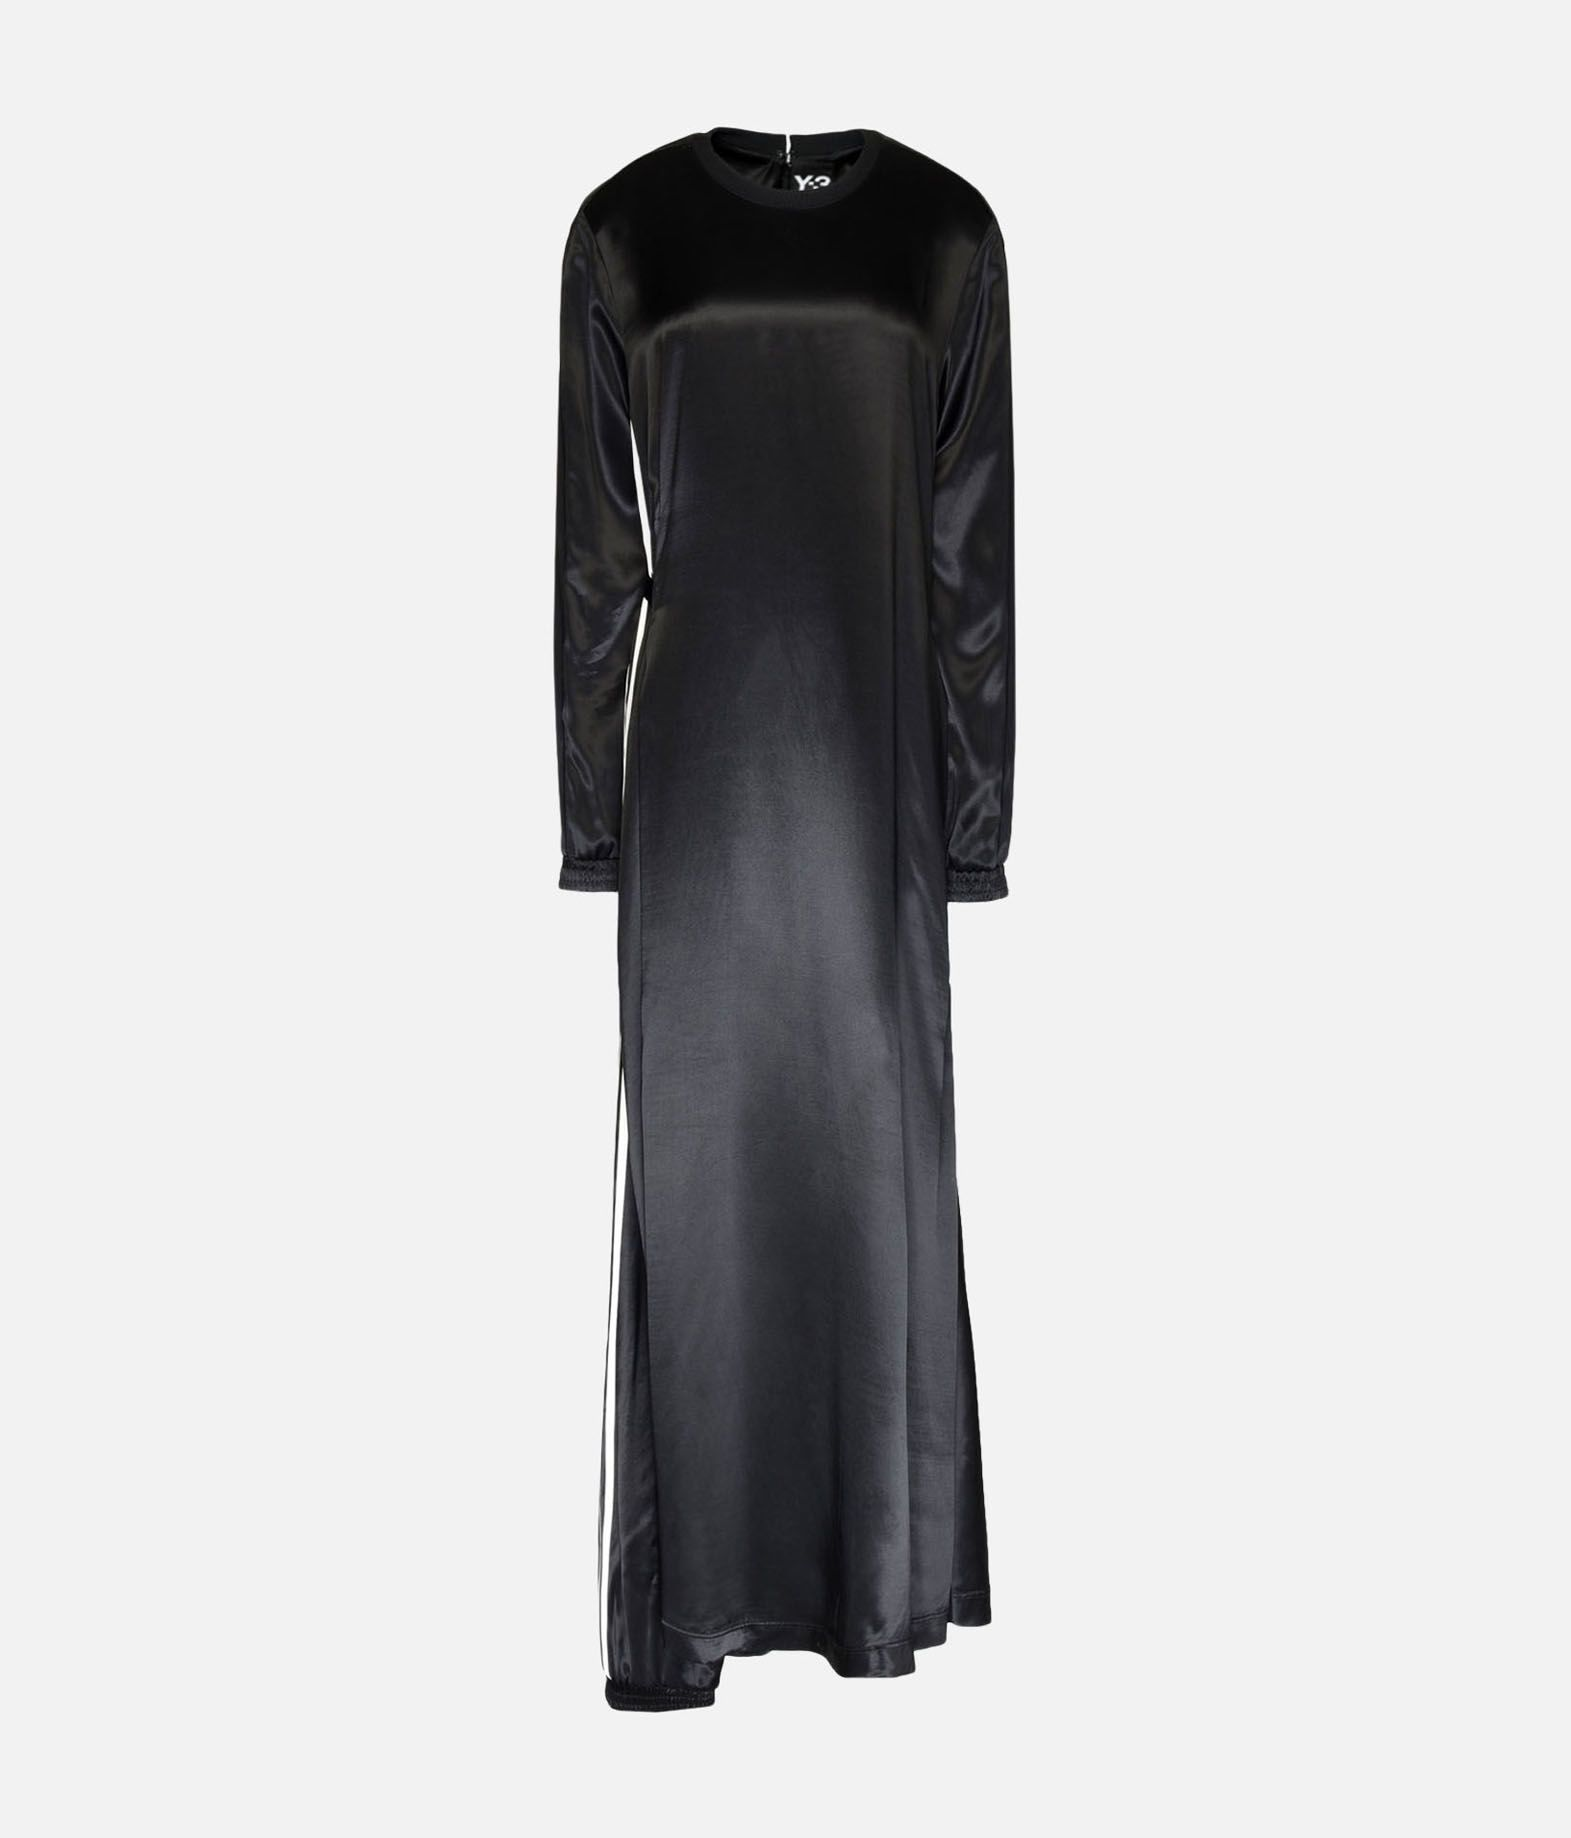 Y-3 Y-3 3-Stripes Lux Track Dress Robe longue Femme f